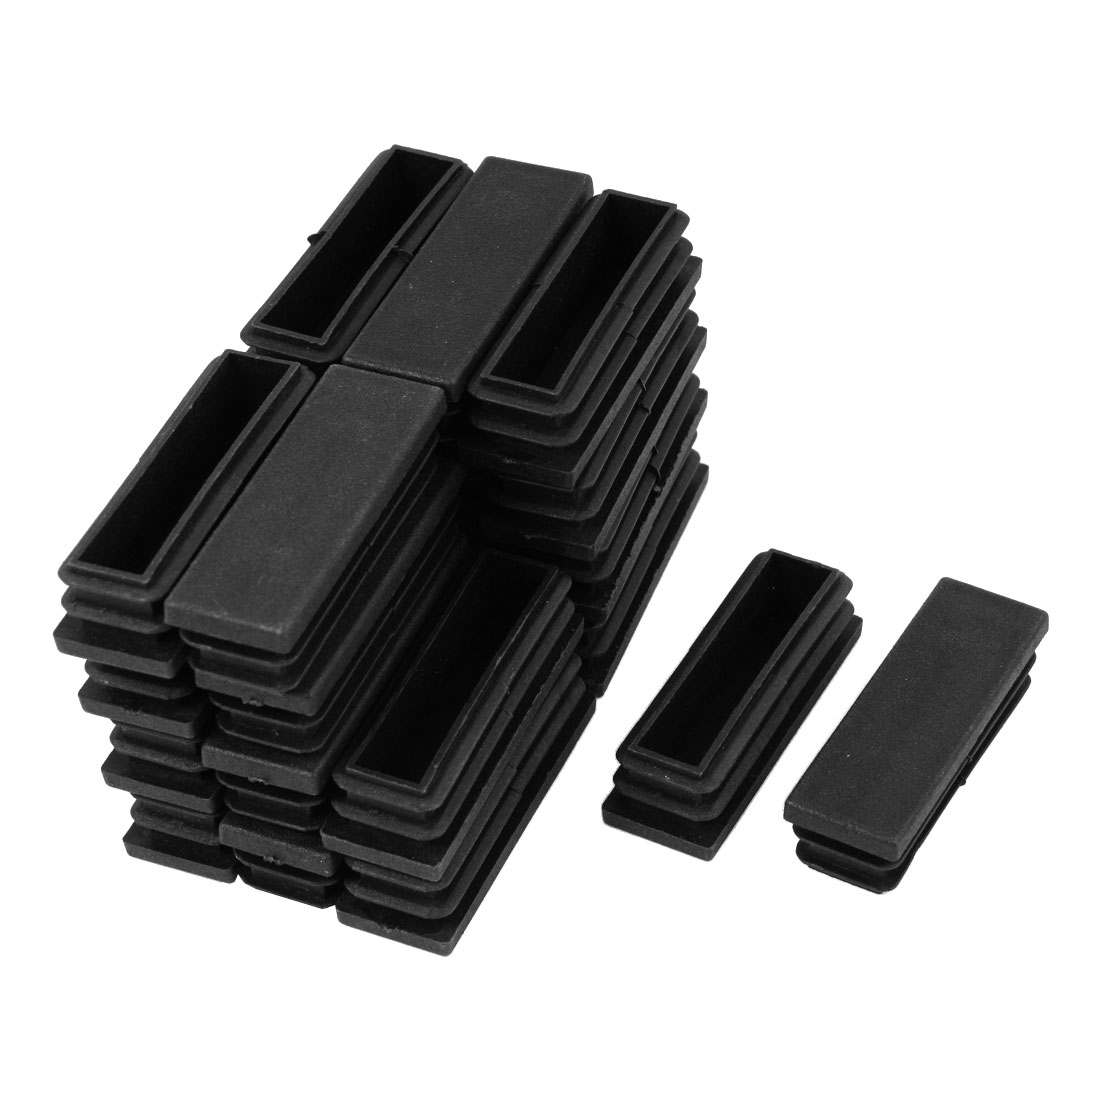 24 Pcs Black Plastic Rectangle Blanking End Caps Cover Tube Inserts 20mm x 60mm